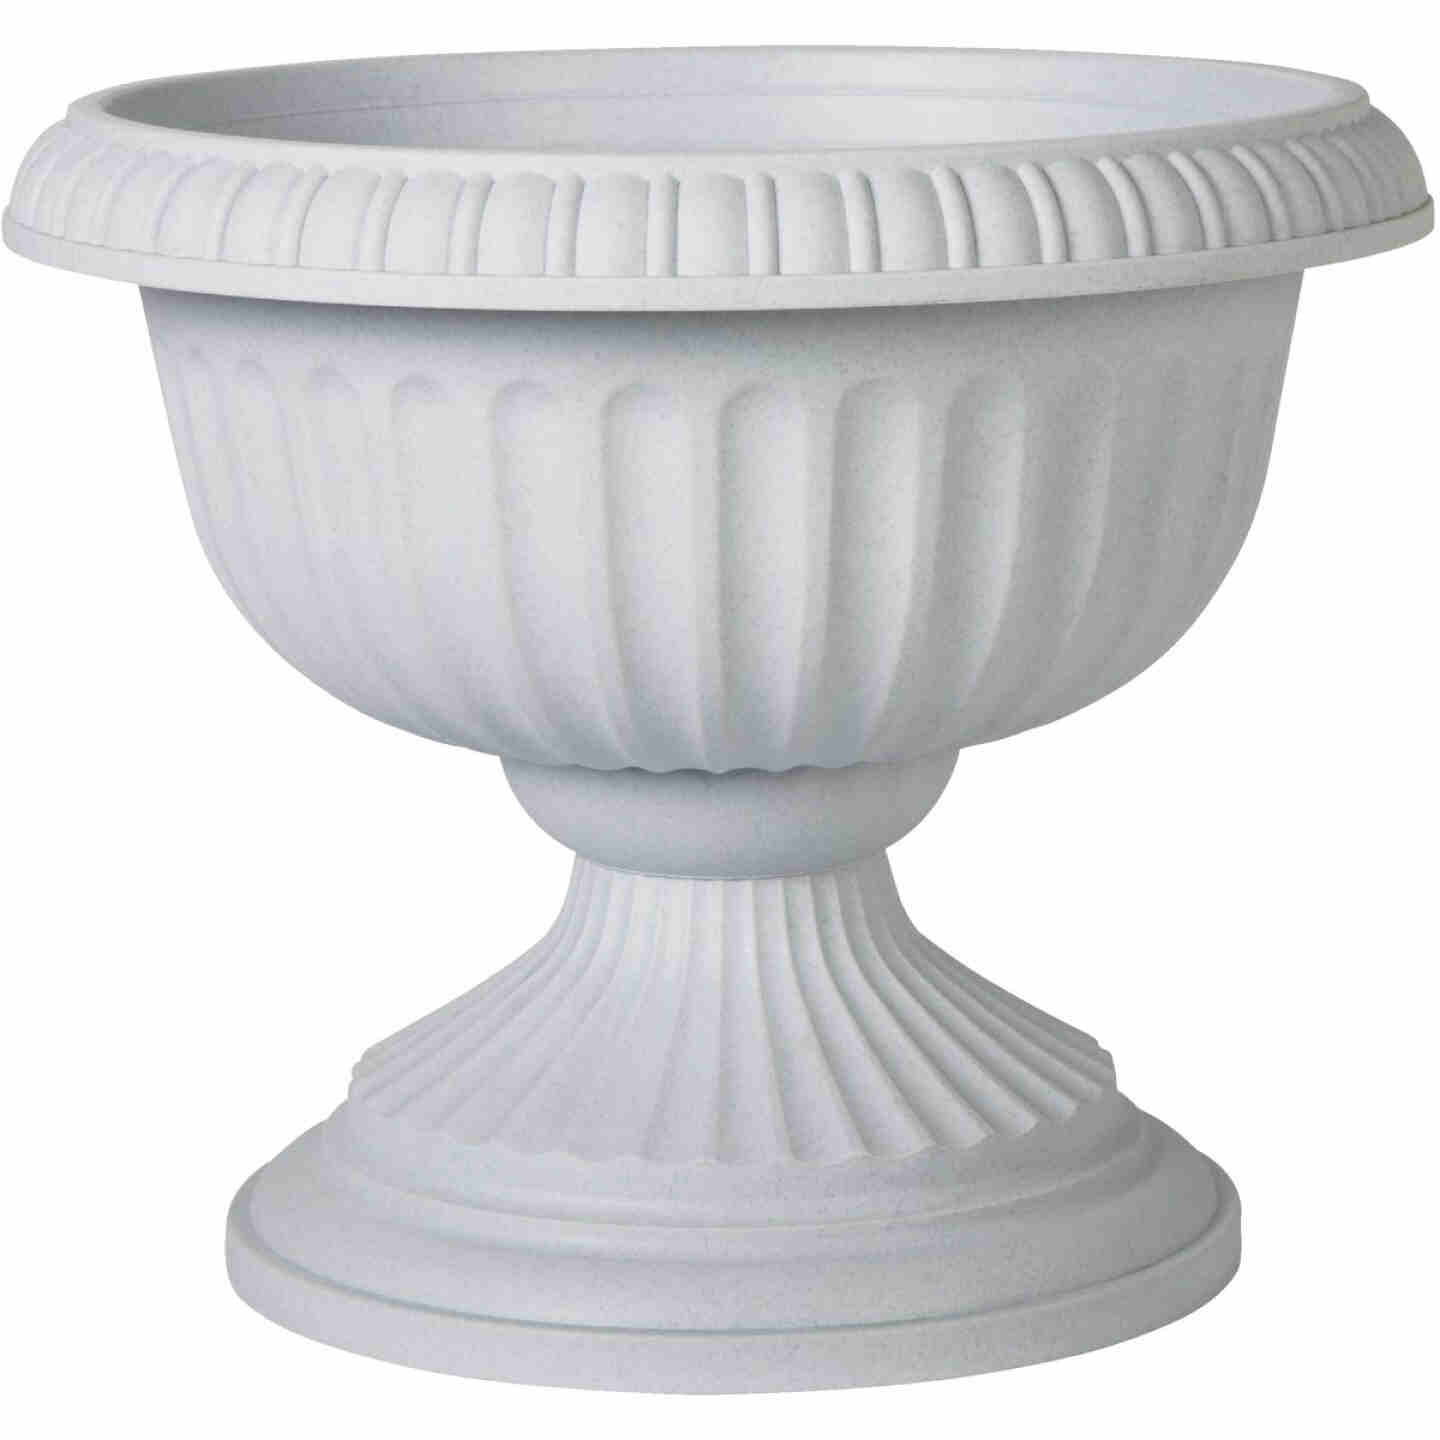 Novelty 18 In. W. x 14.5 In. H. x 18 In. L. Poly Stone Urn Image 1